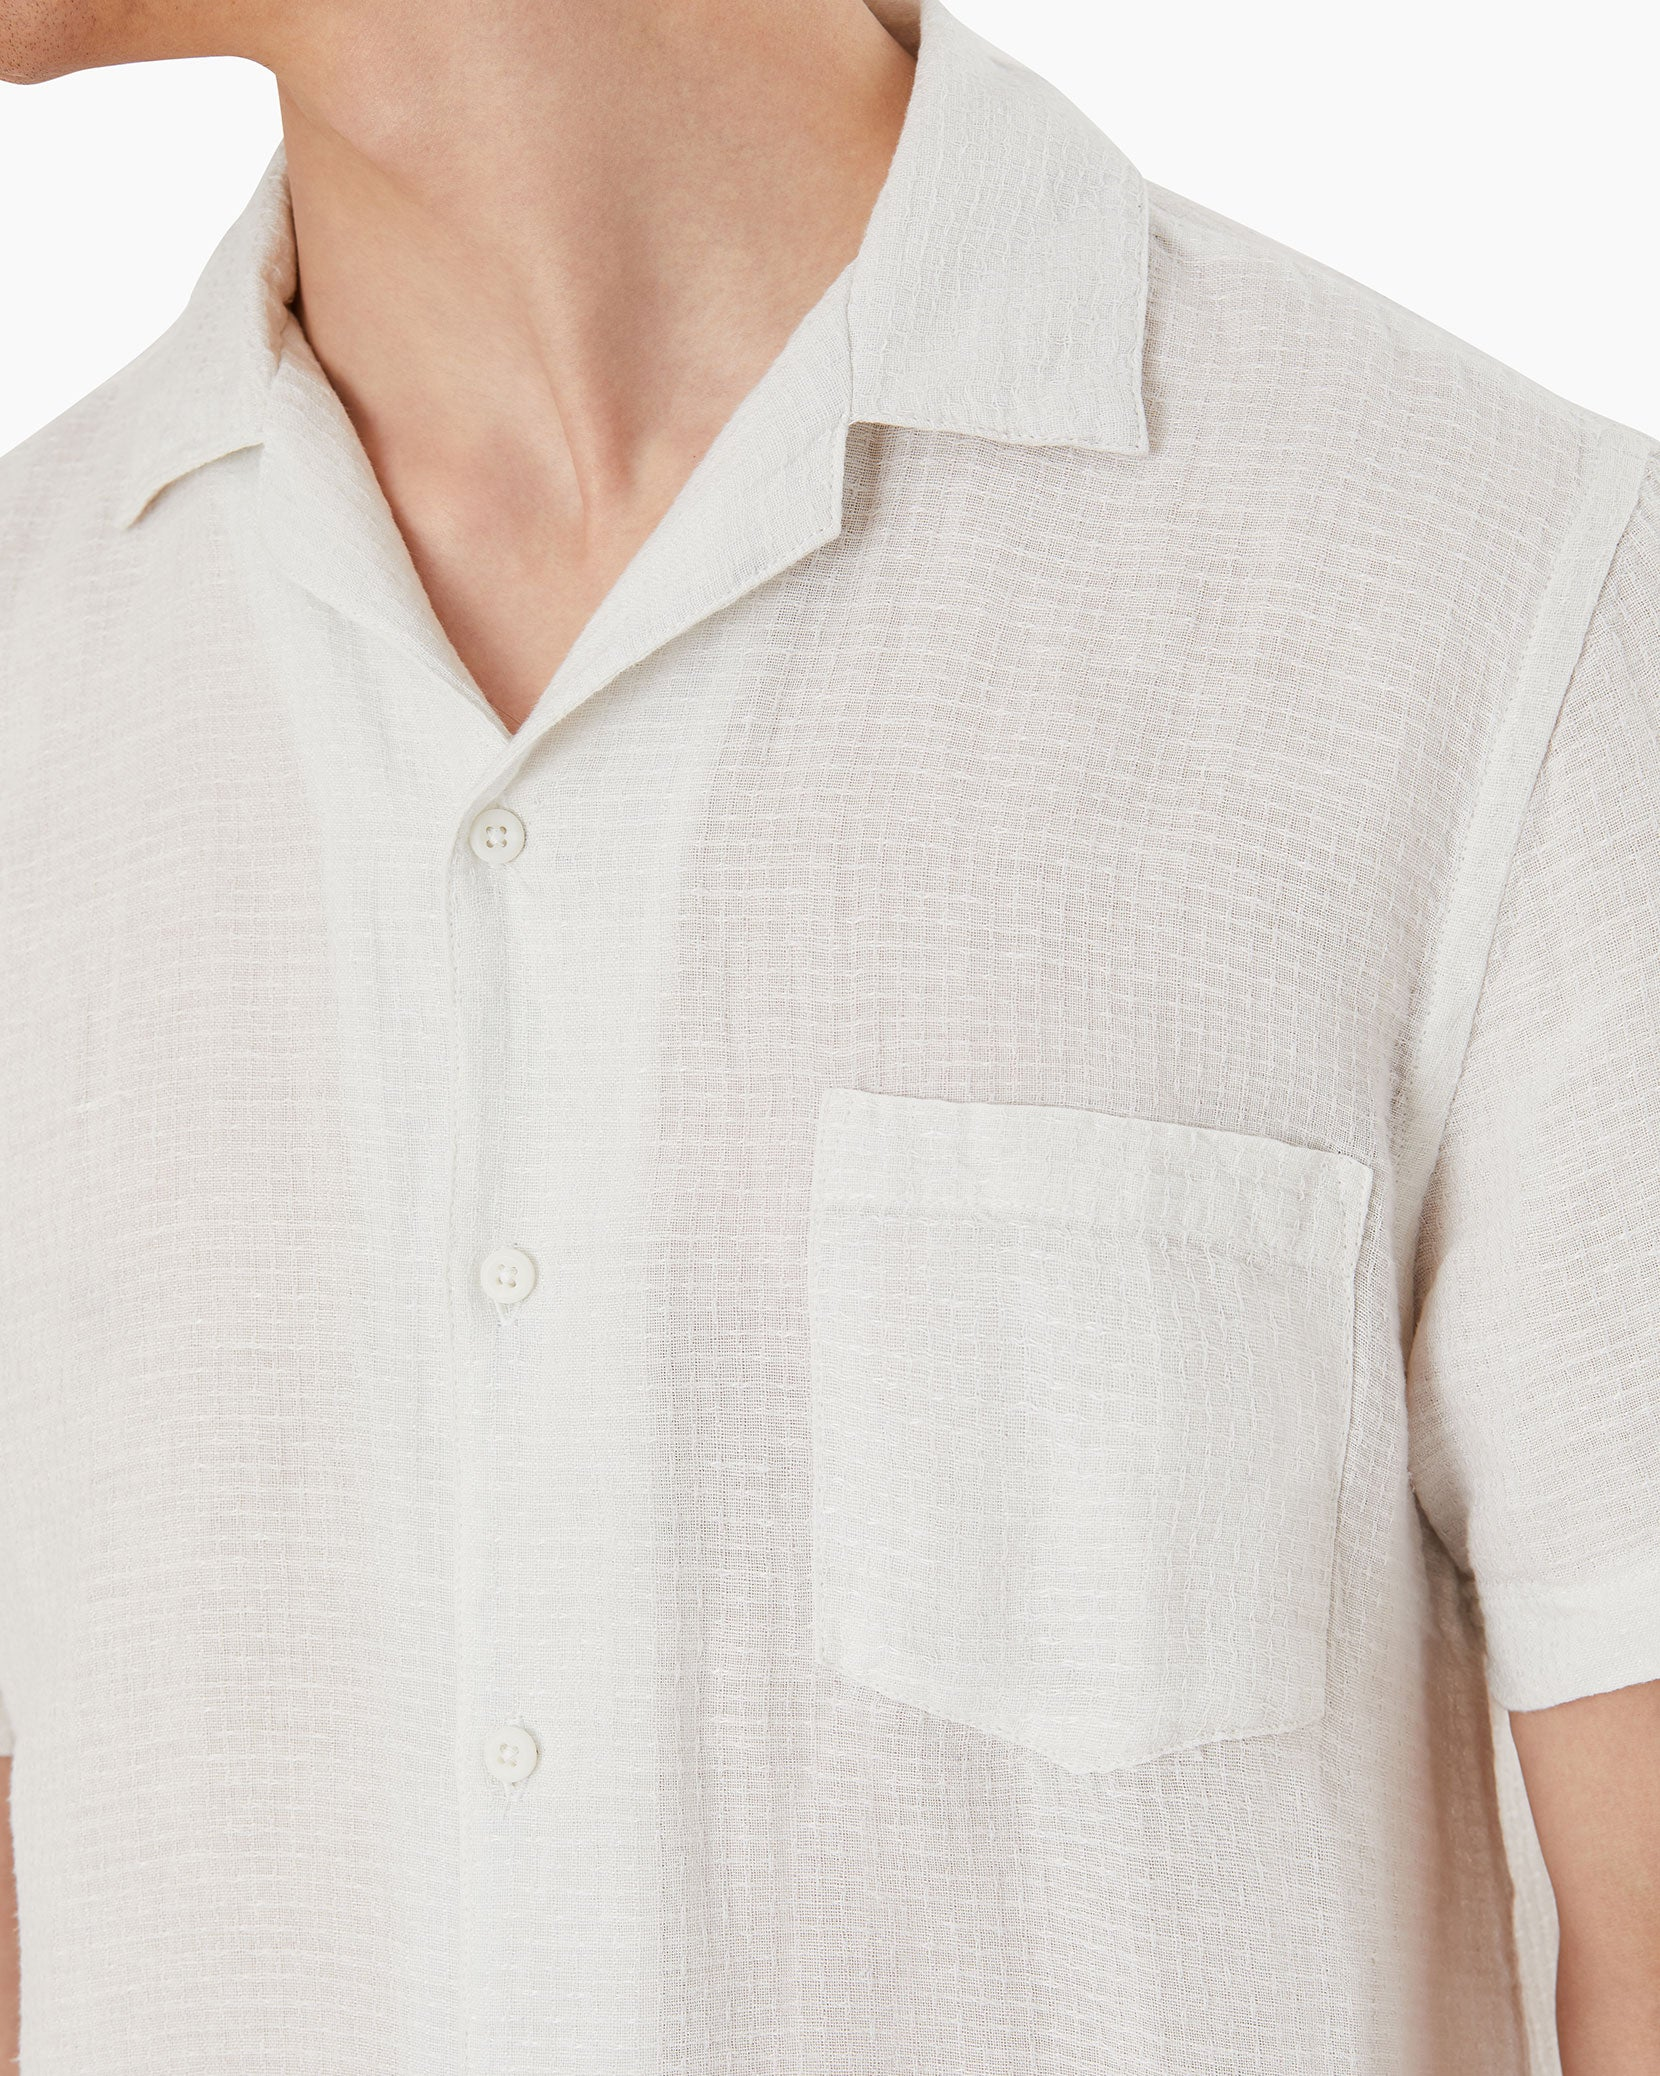 Vacation Checked Dobby Shirt in White - 5 - Onia